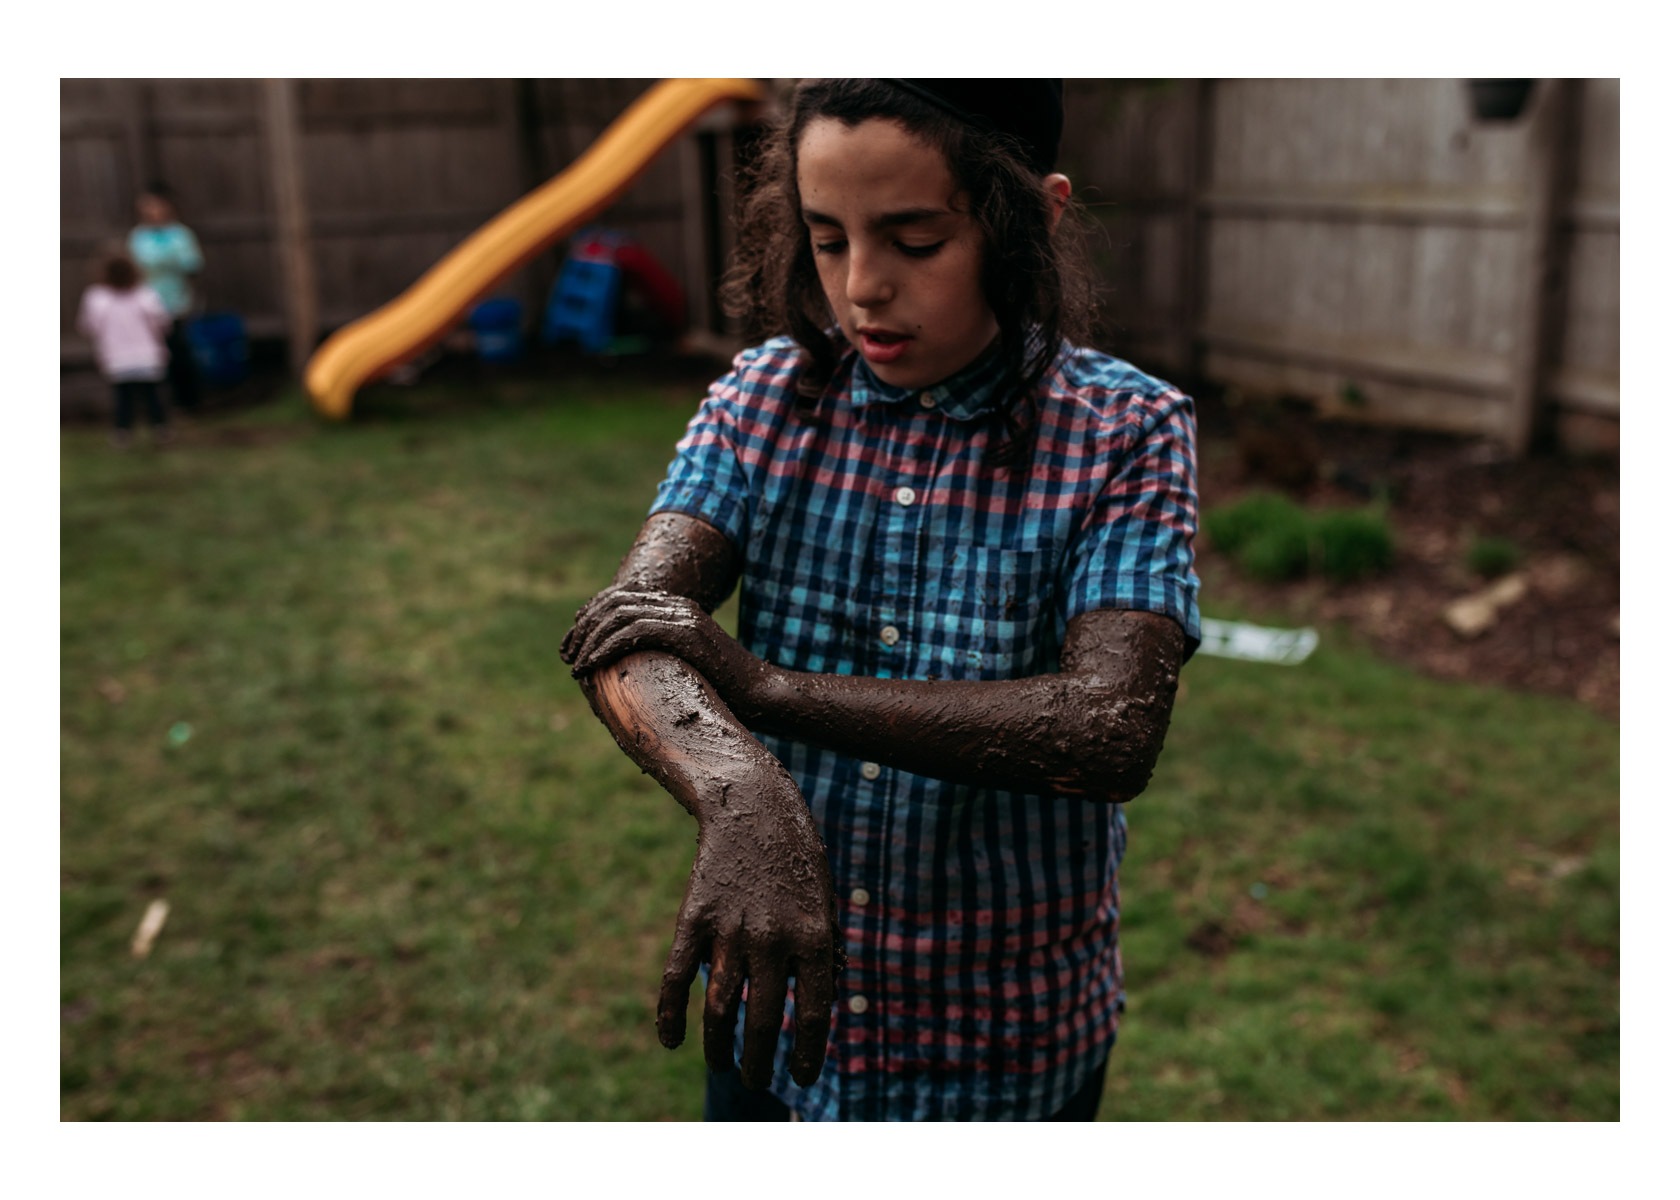 9 year old boy rubbing wet mud all over his arms in Milwaukee in May